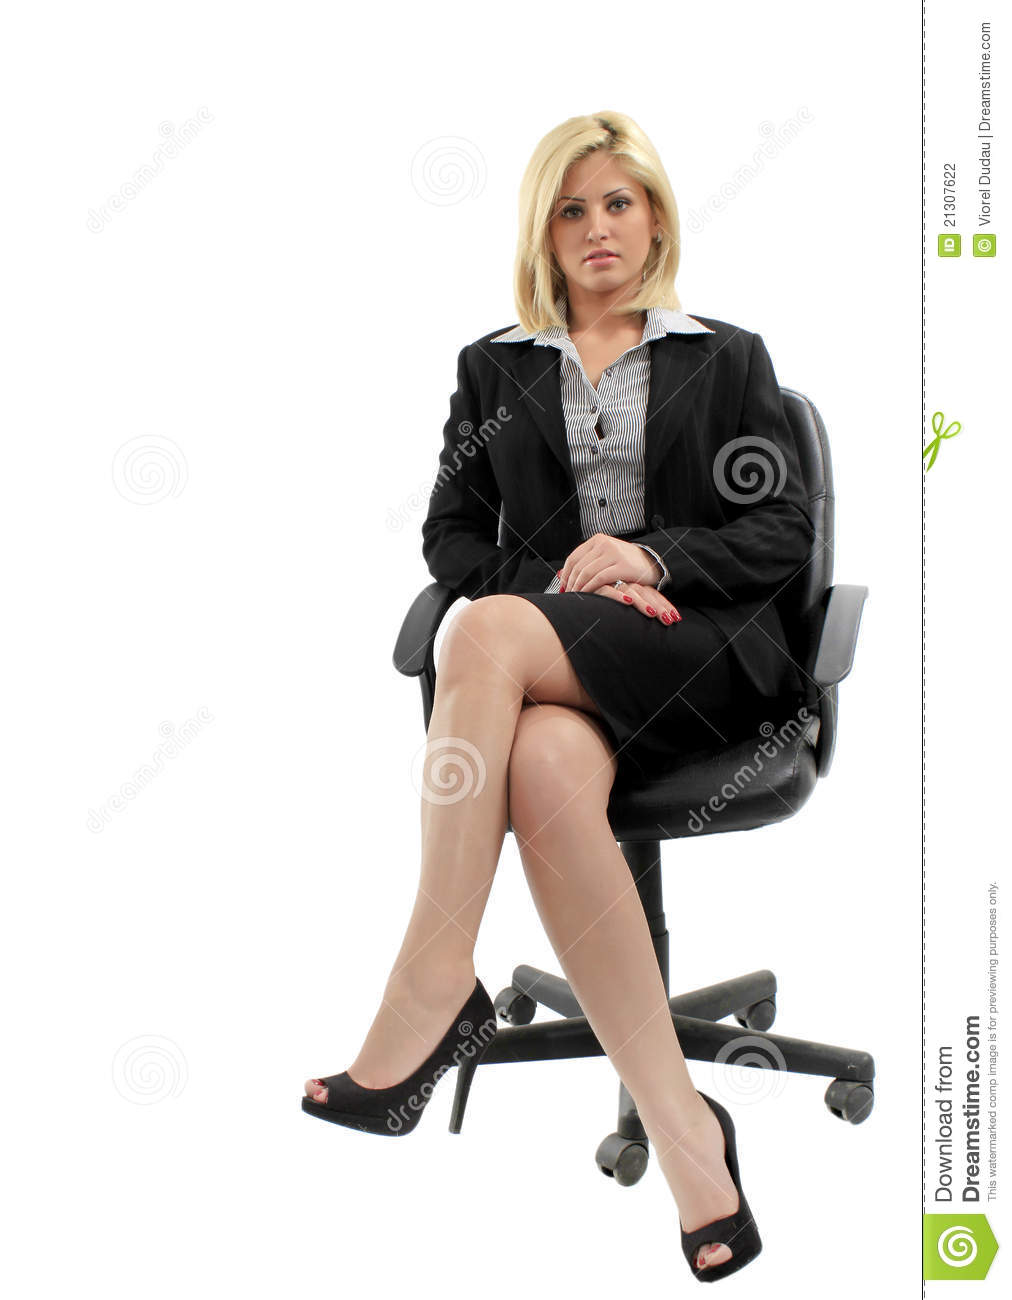 ... black suit, sitting in office chair, isolated on white studio